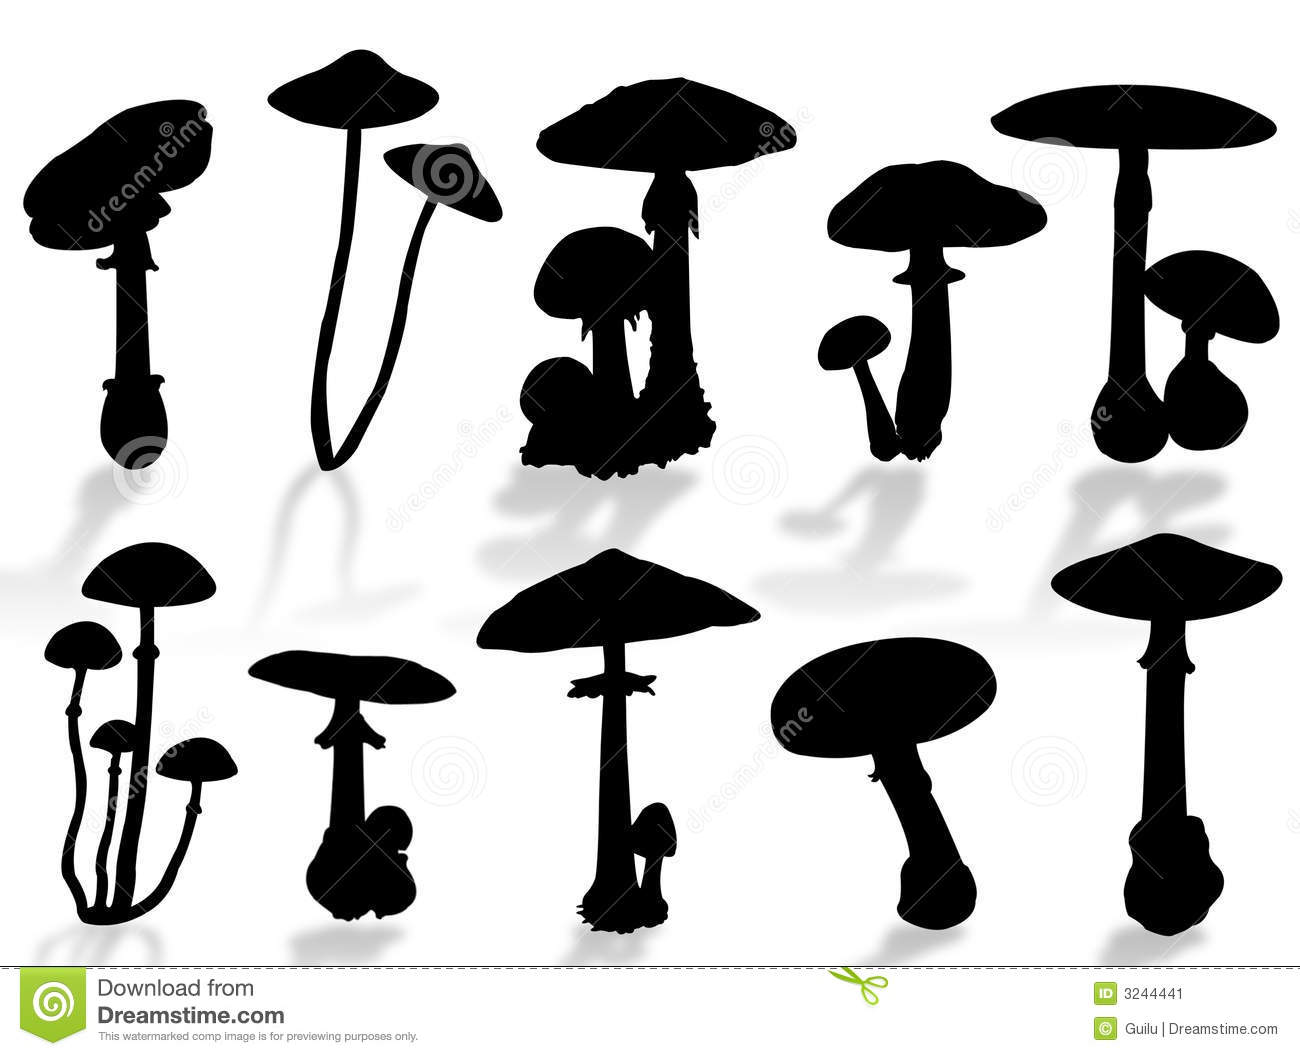 Mushrooms silhouette stock image image 3244441